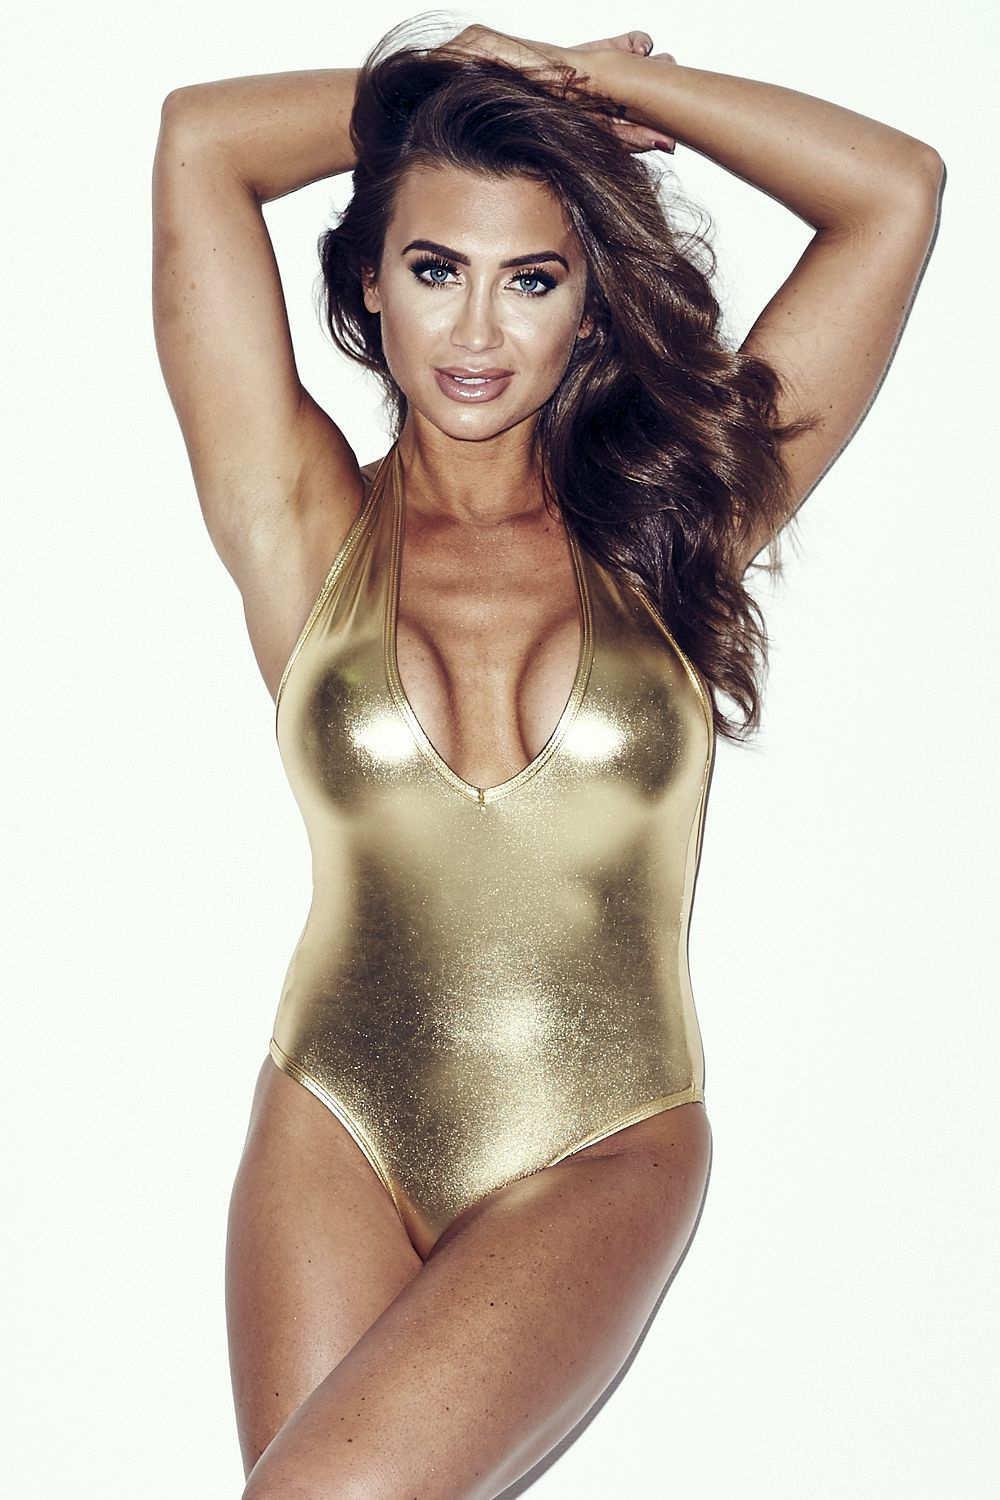 Lauren Goodger in a Gold Swimsuit Shoot